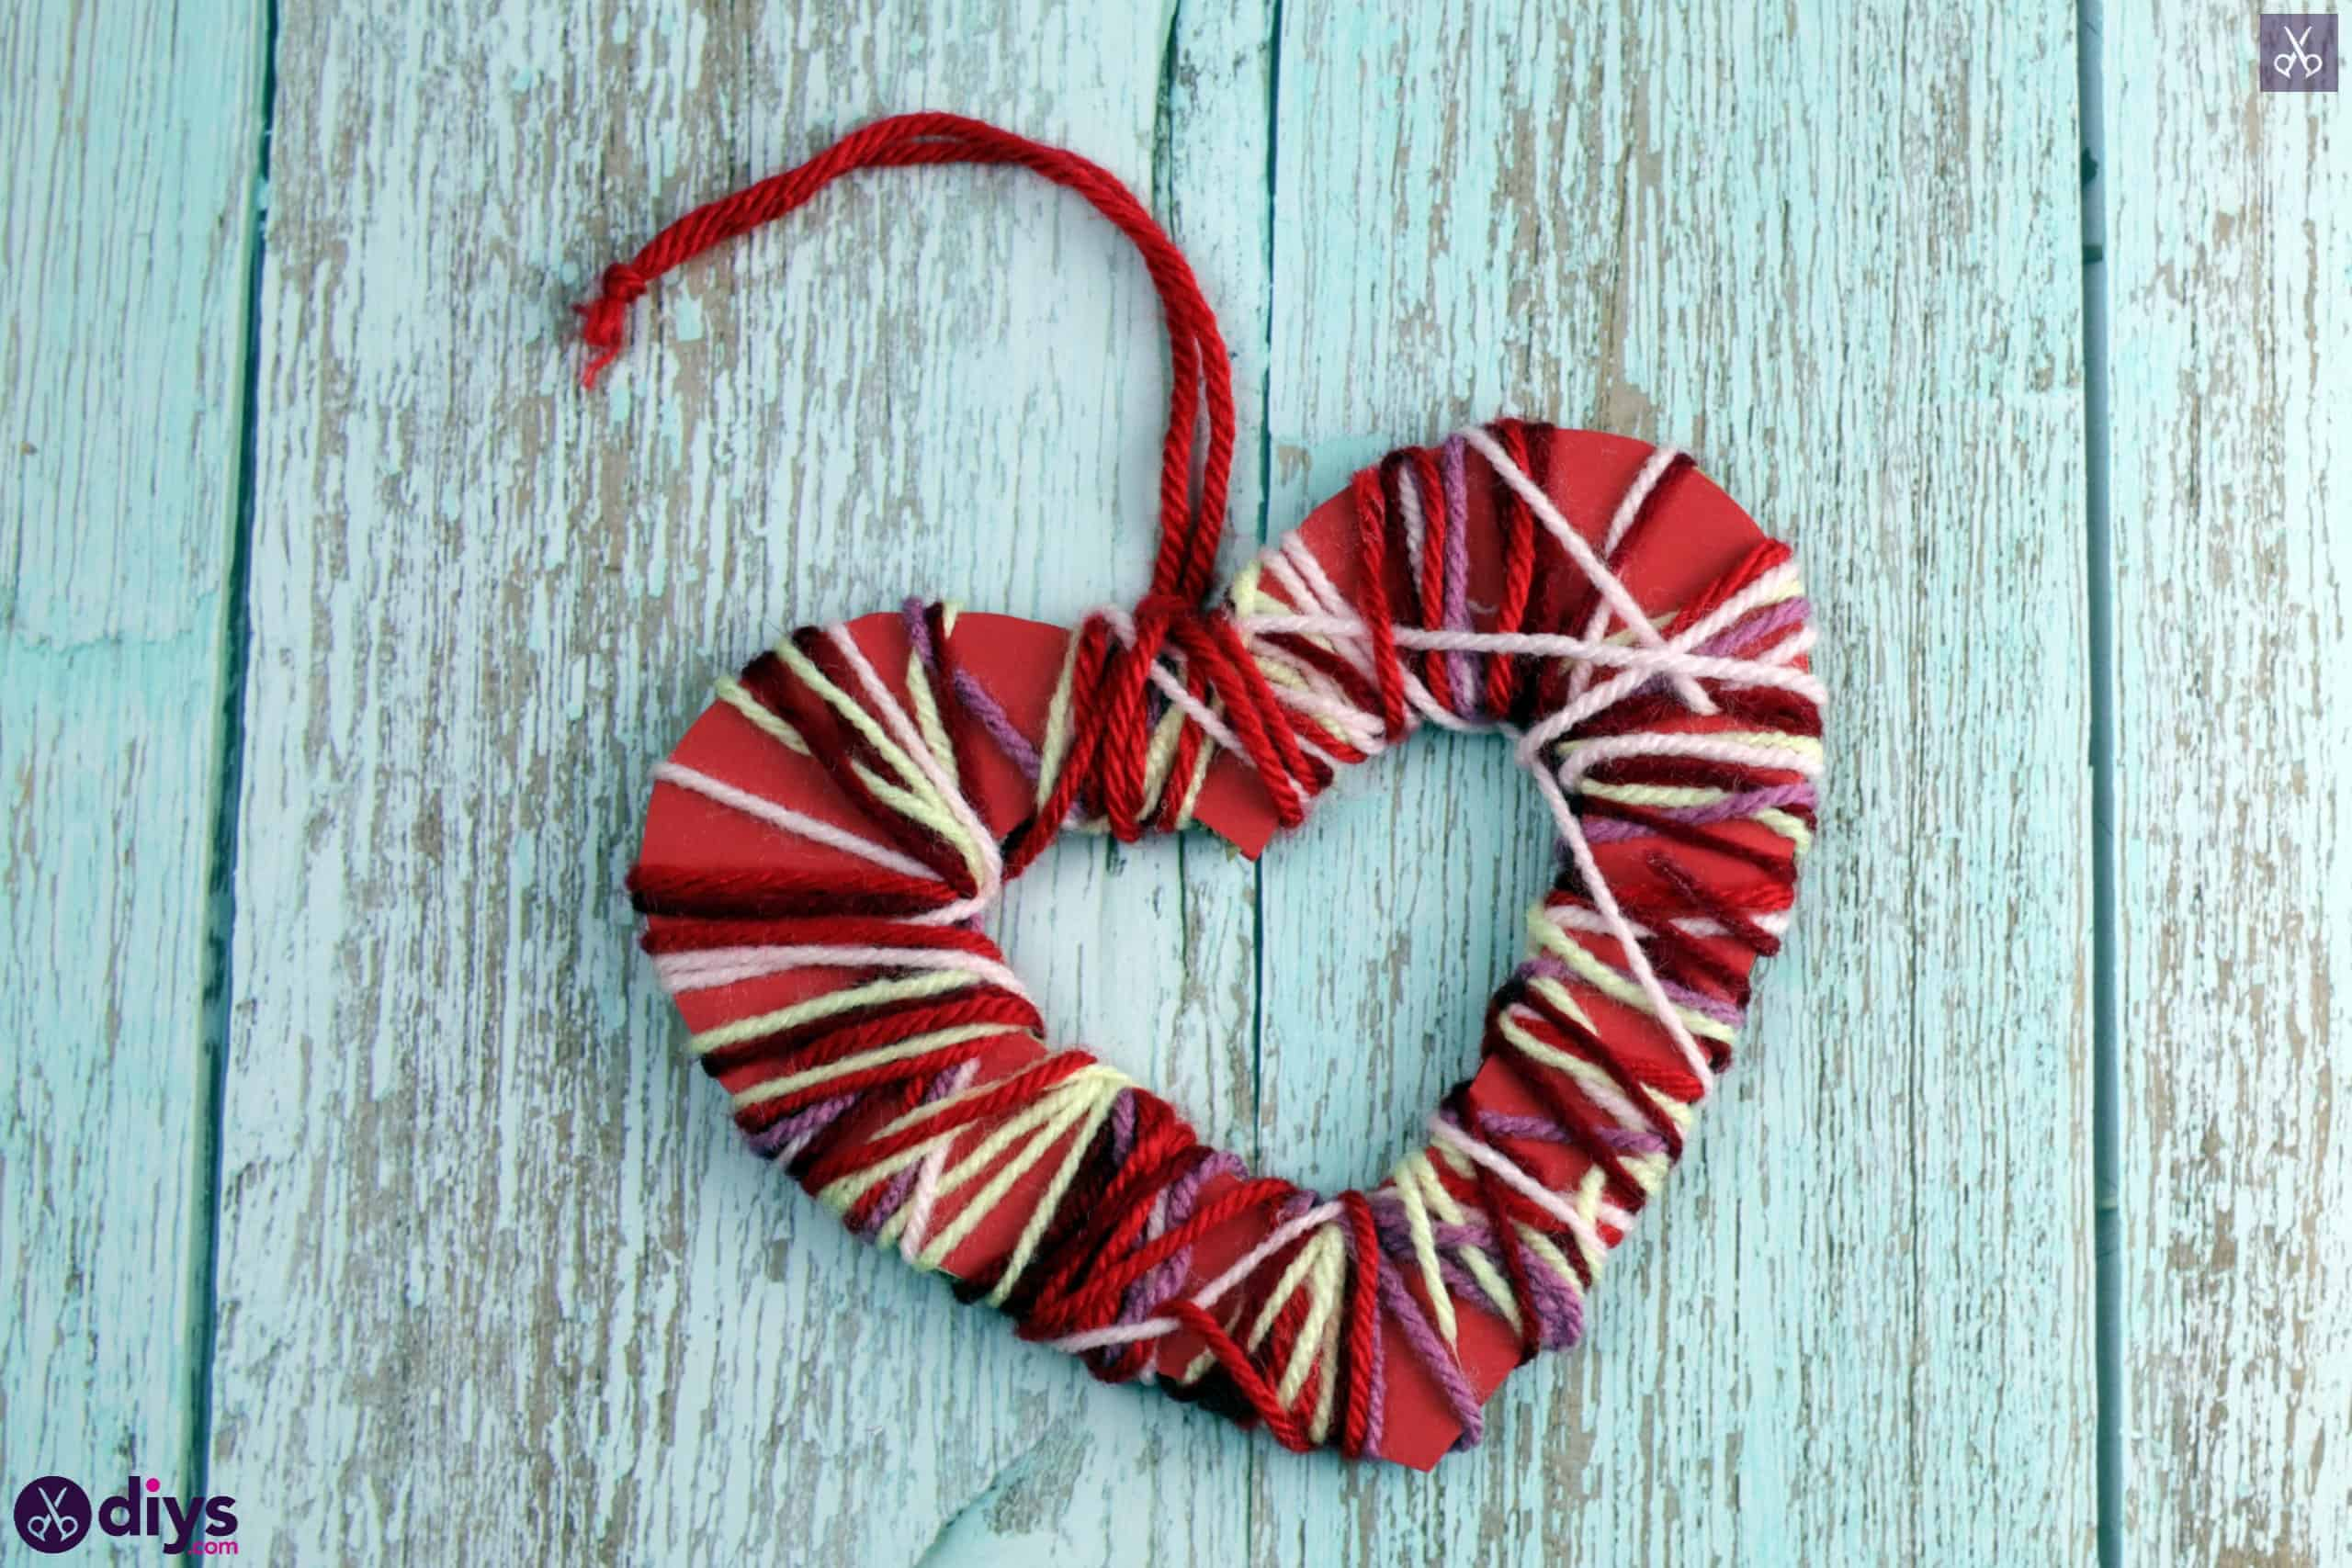 Diy yarn wrapped paper heart